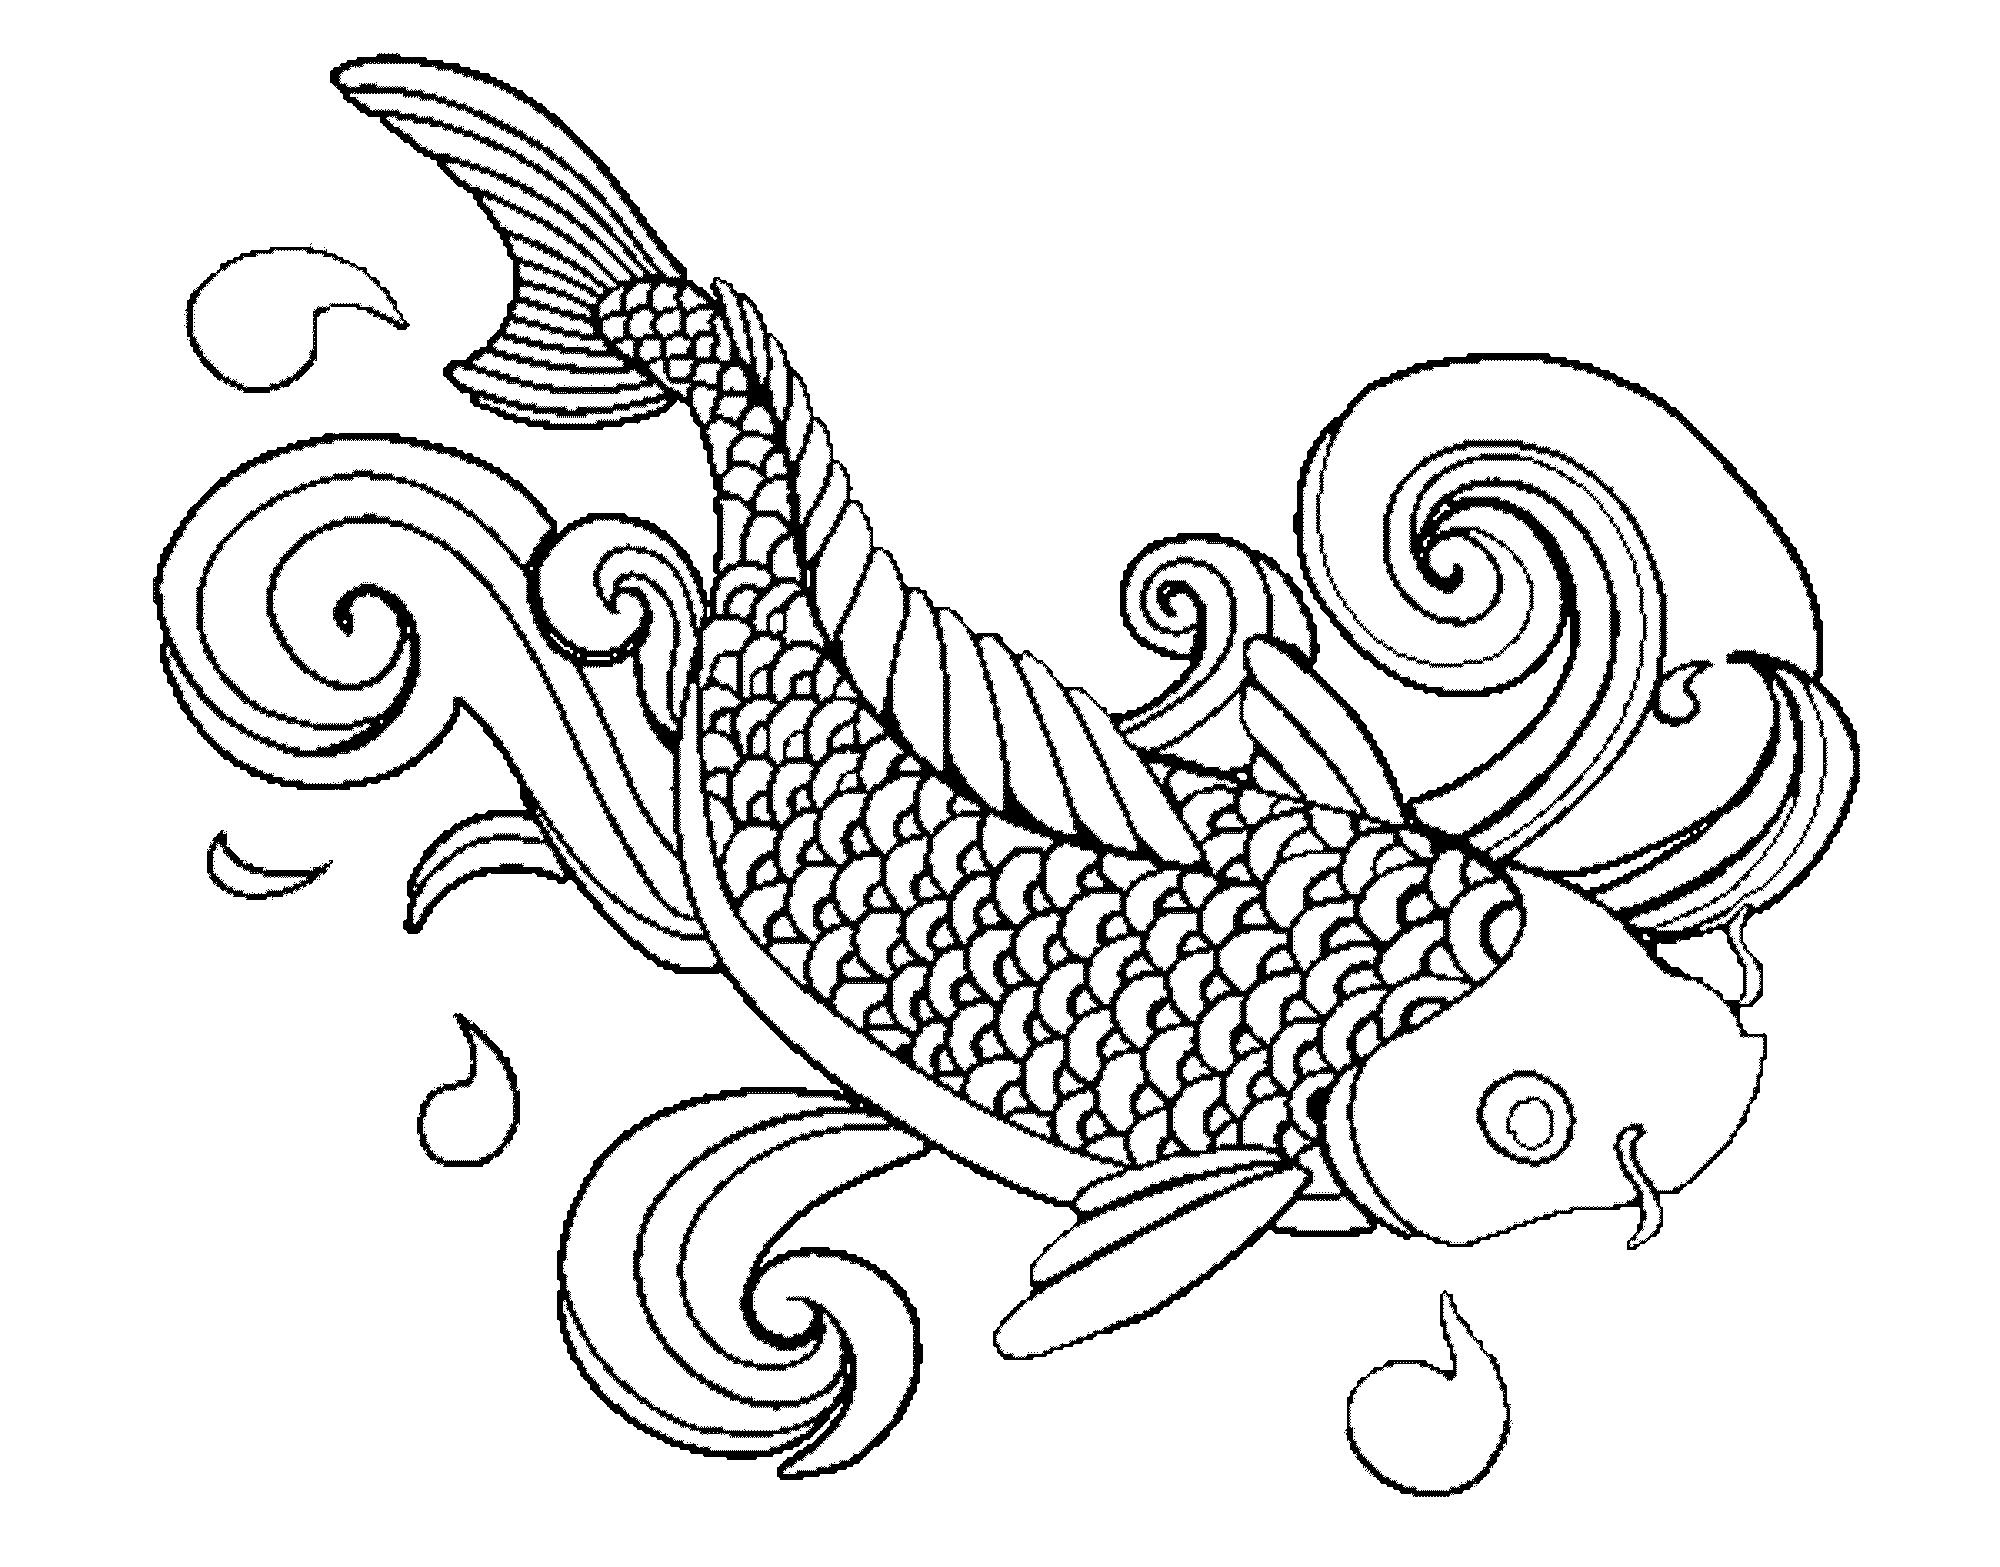 Fish drawing outline at. Lake clipart koi pond